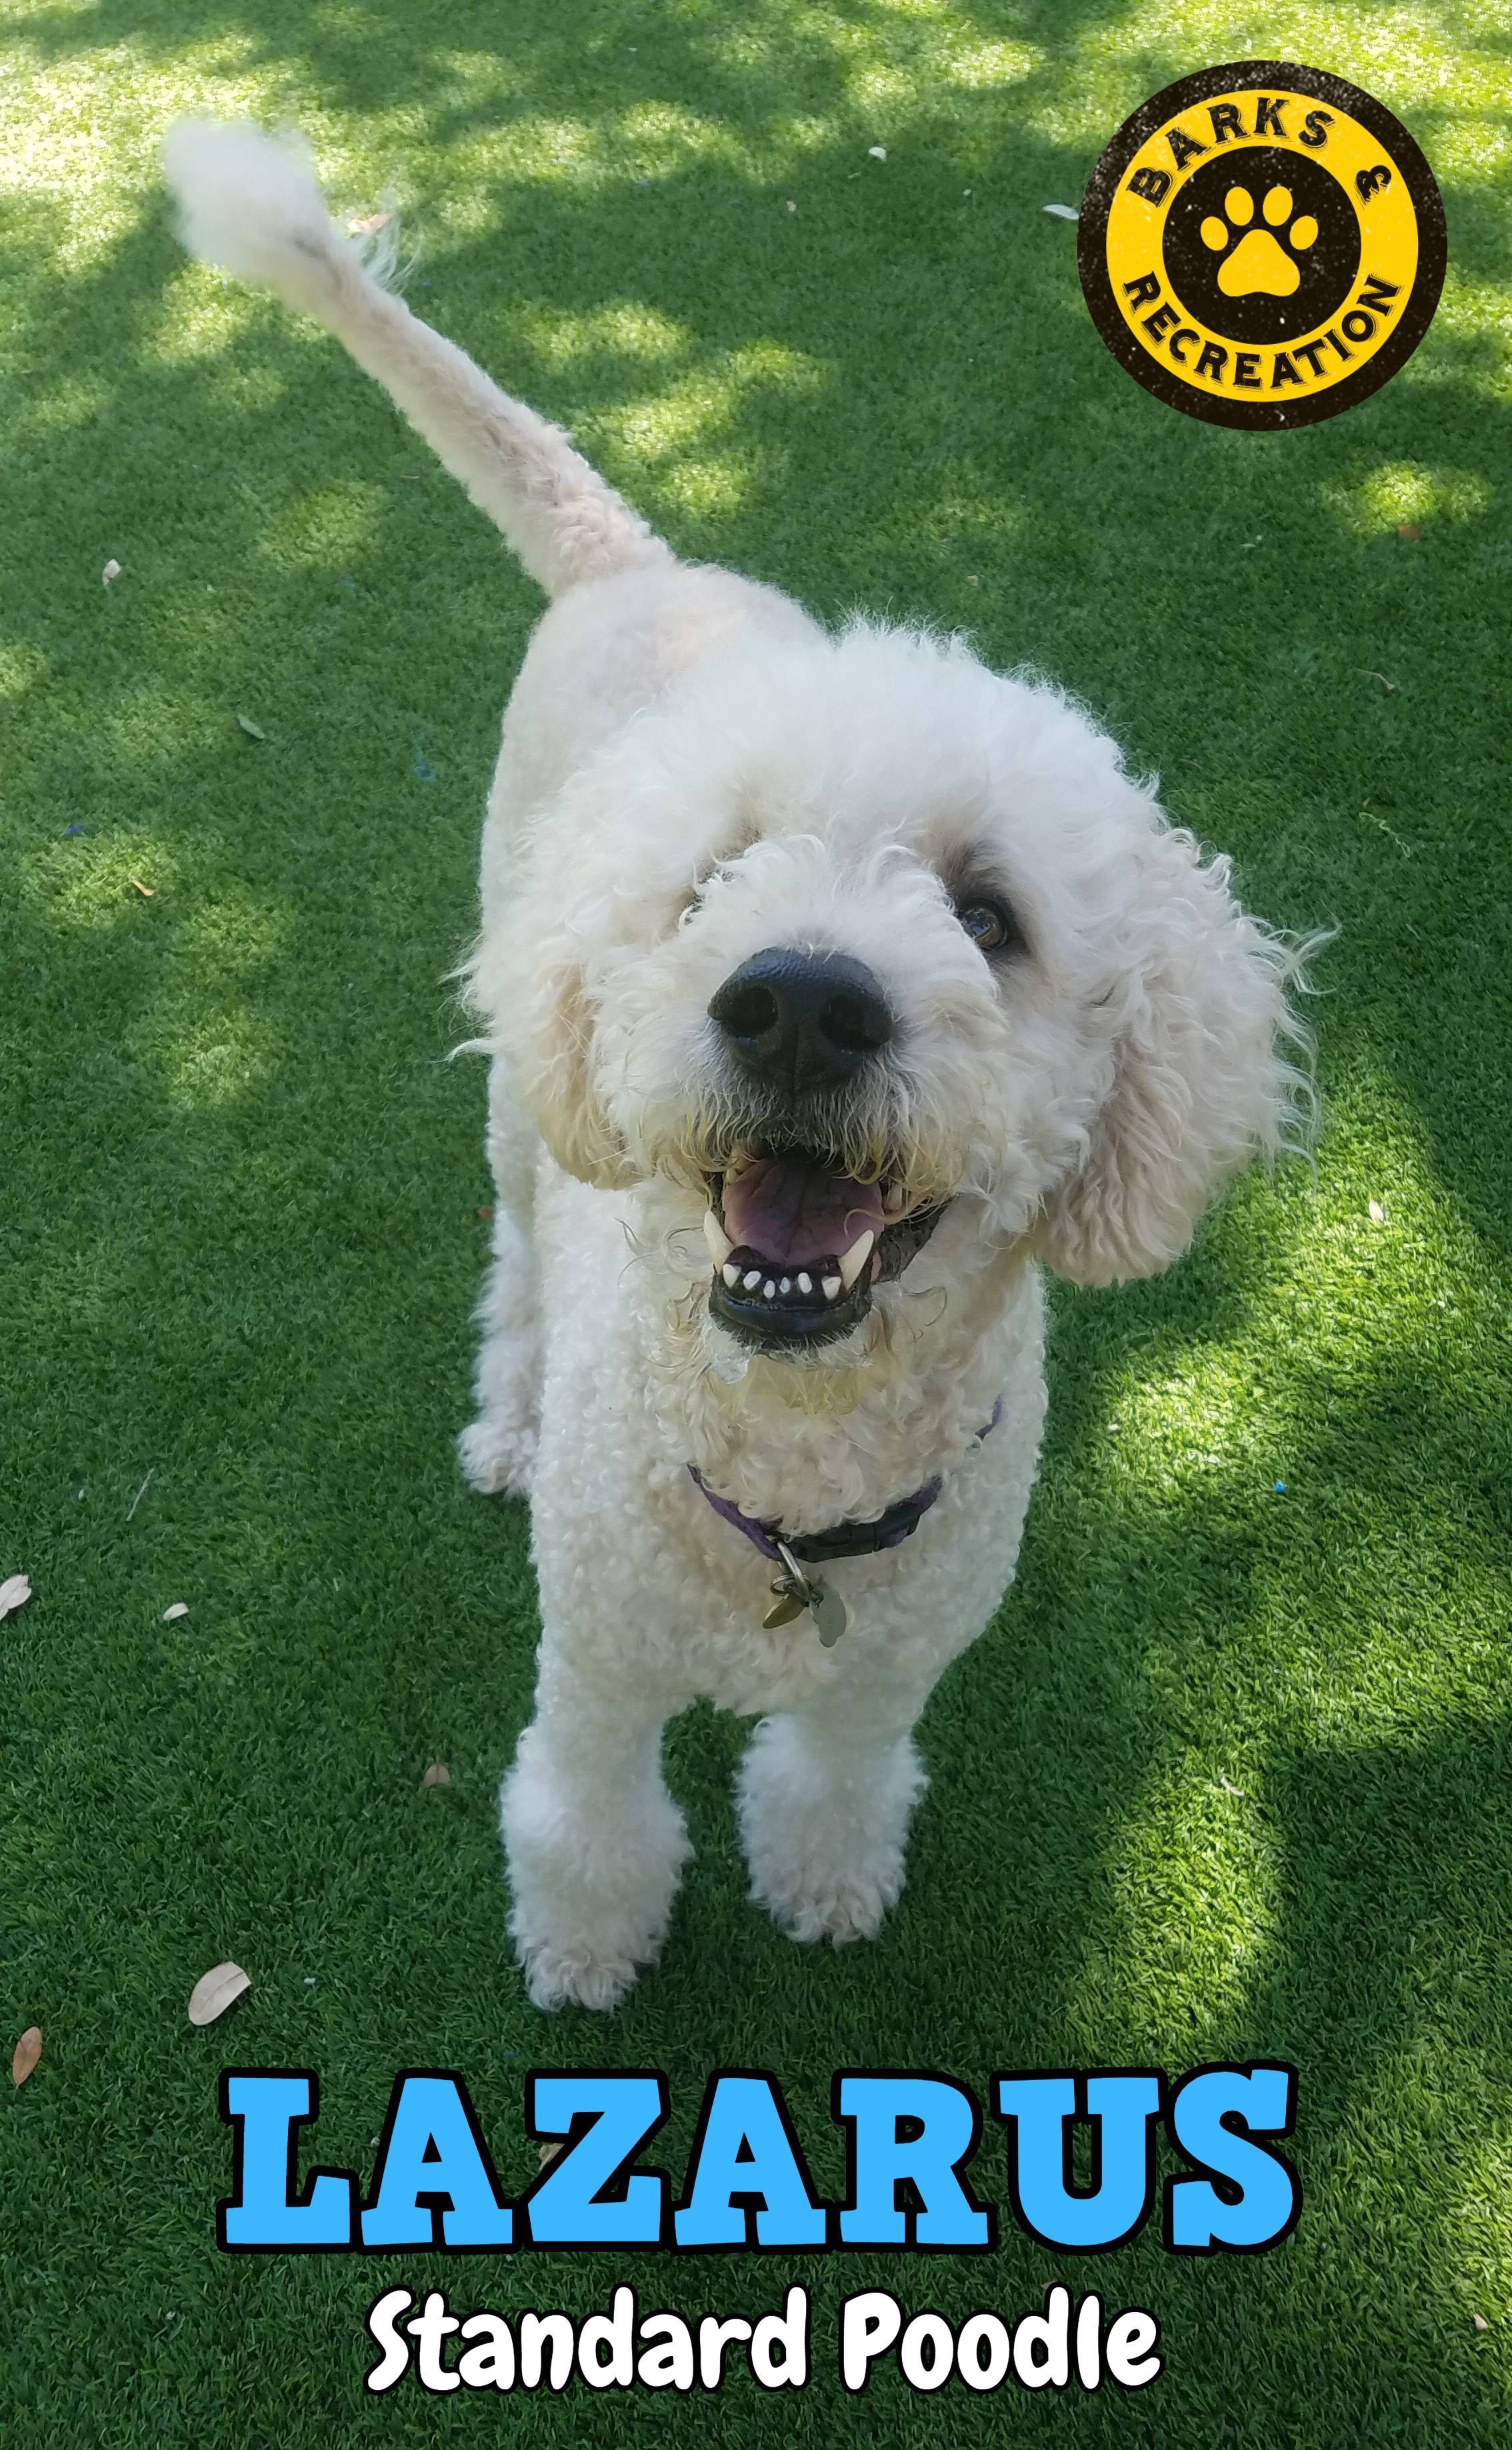 Lazarus A Standard Poodle At Barks Recreation In Seminole Fl